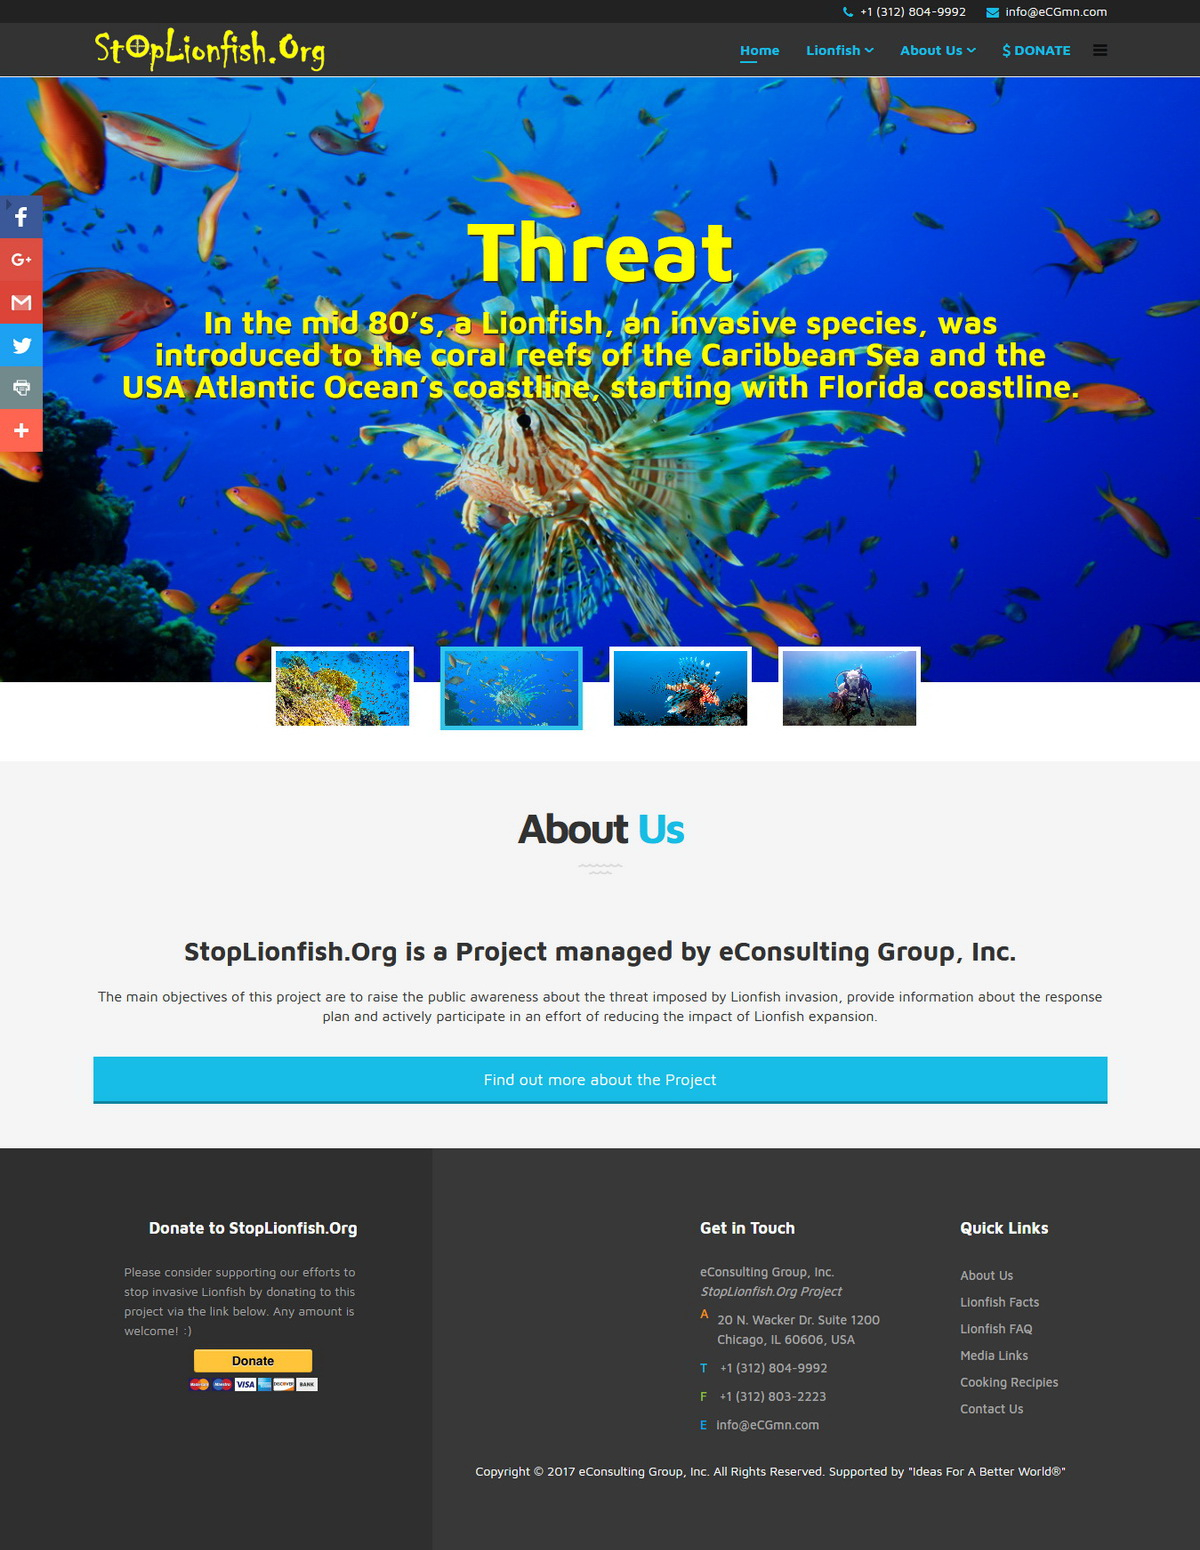 Home Page - Threat